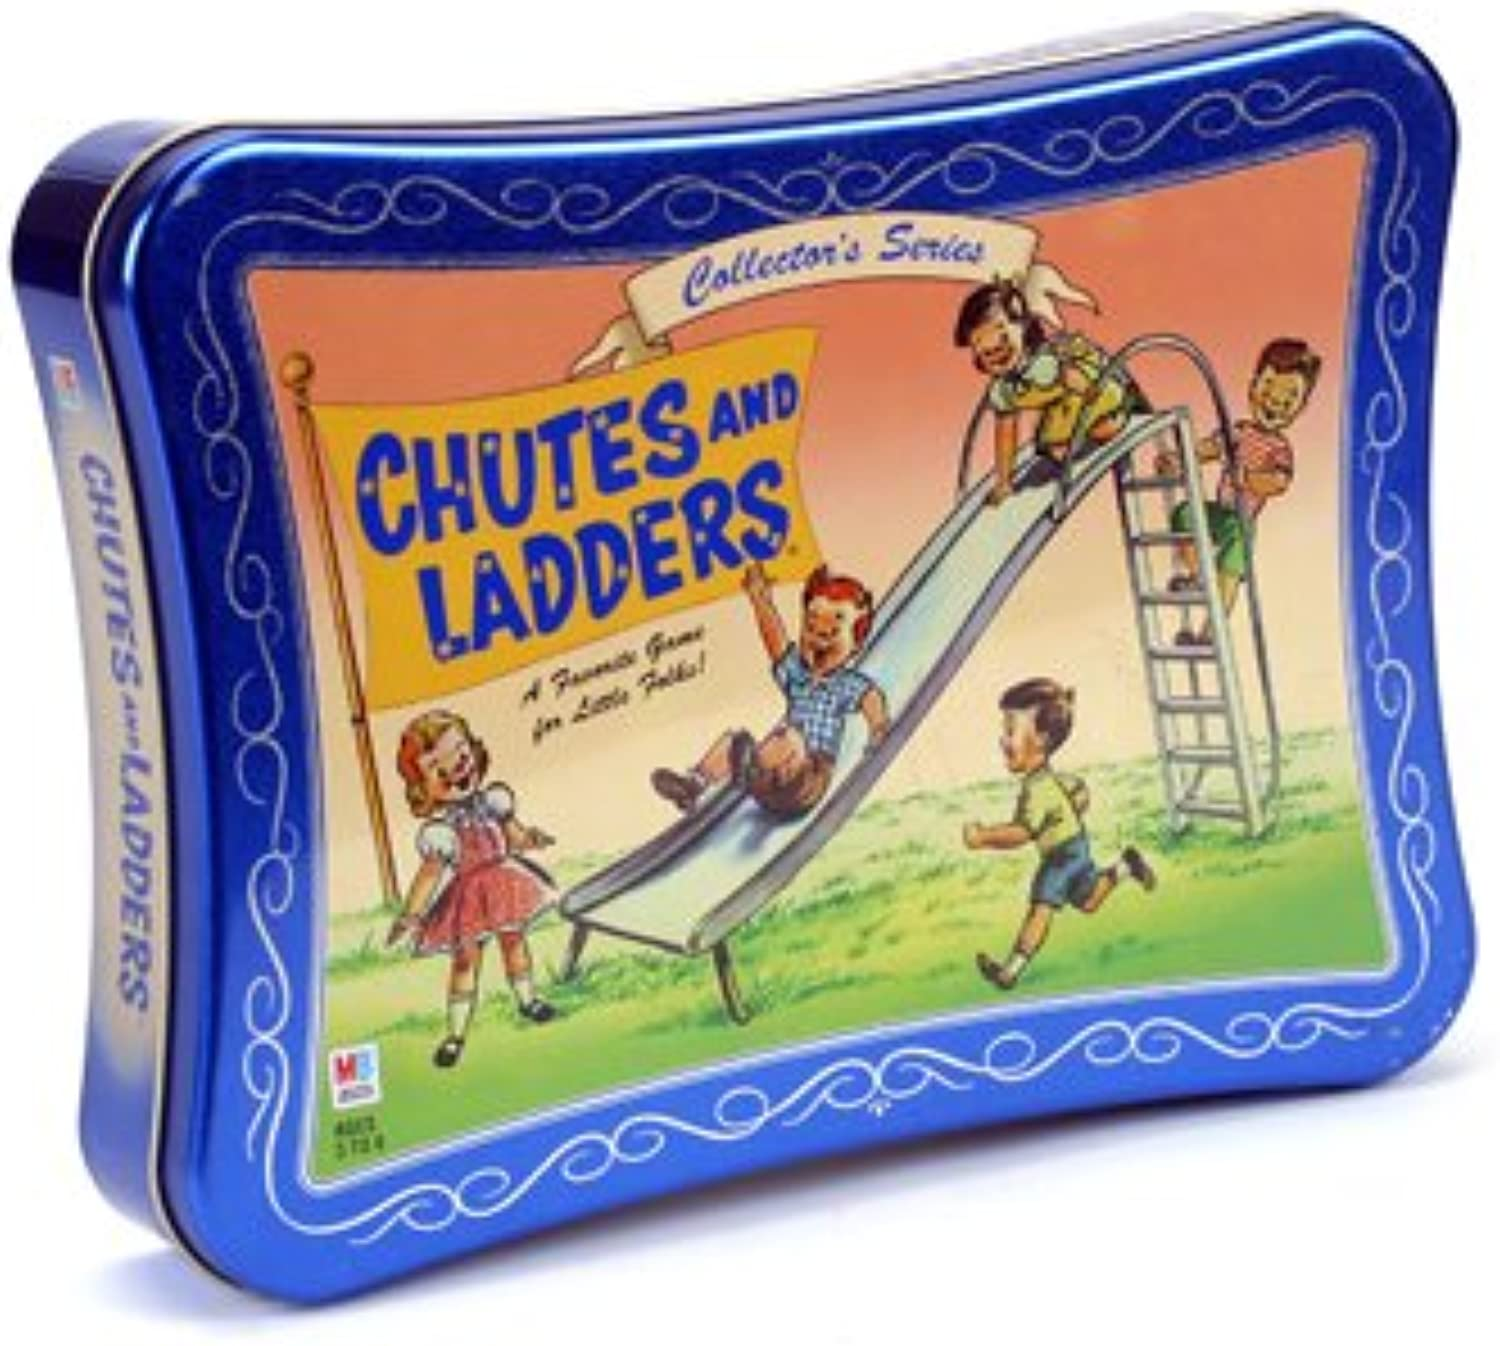 Hasbro Collectors Series Chutes & Ladders